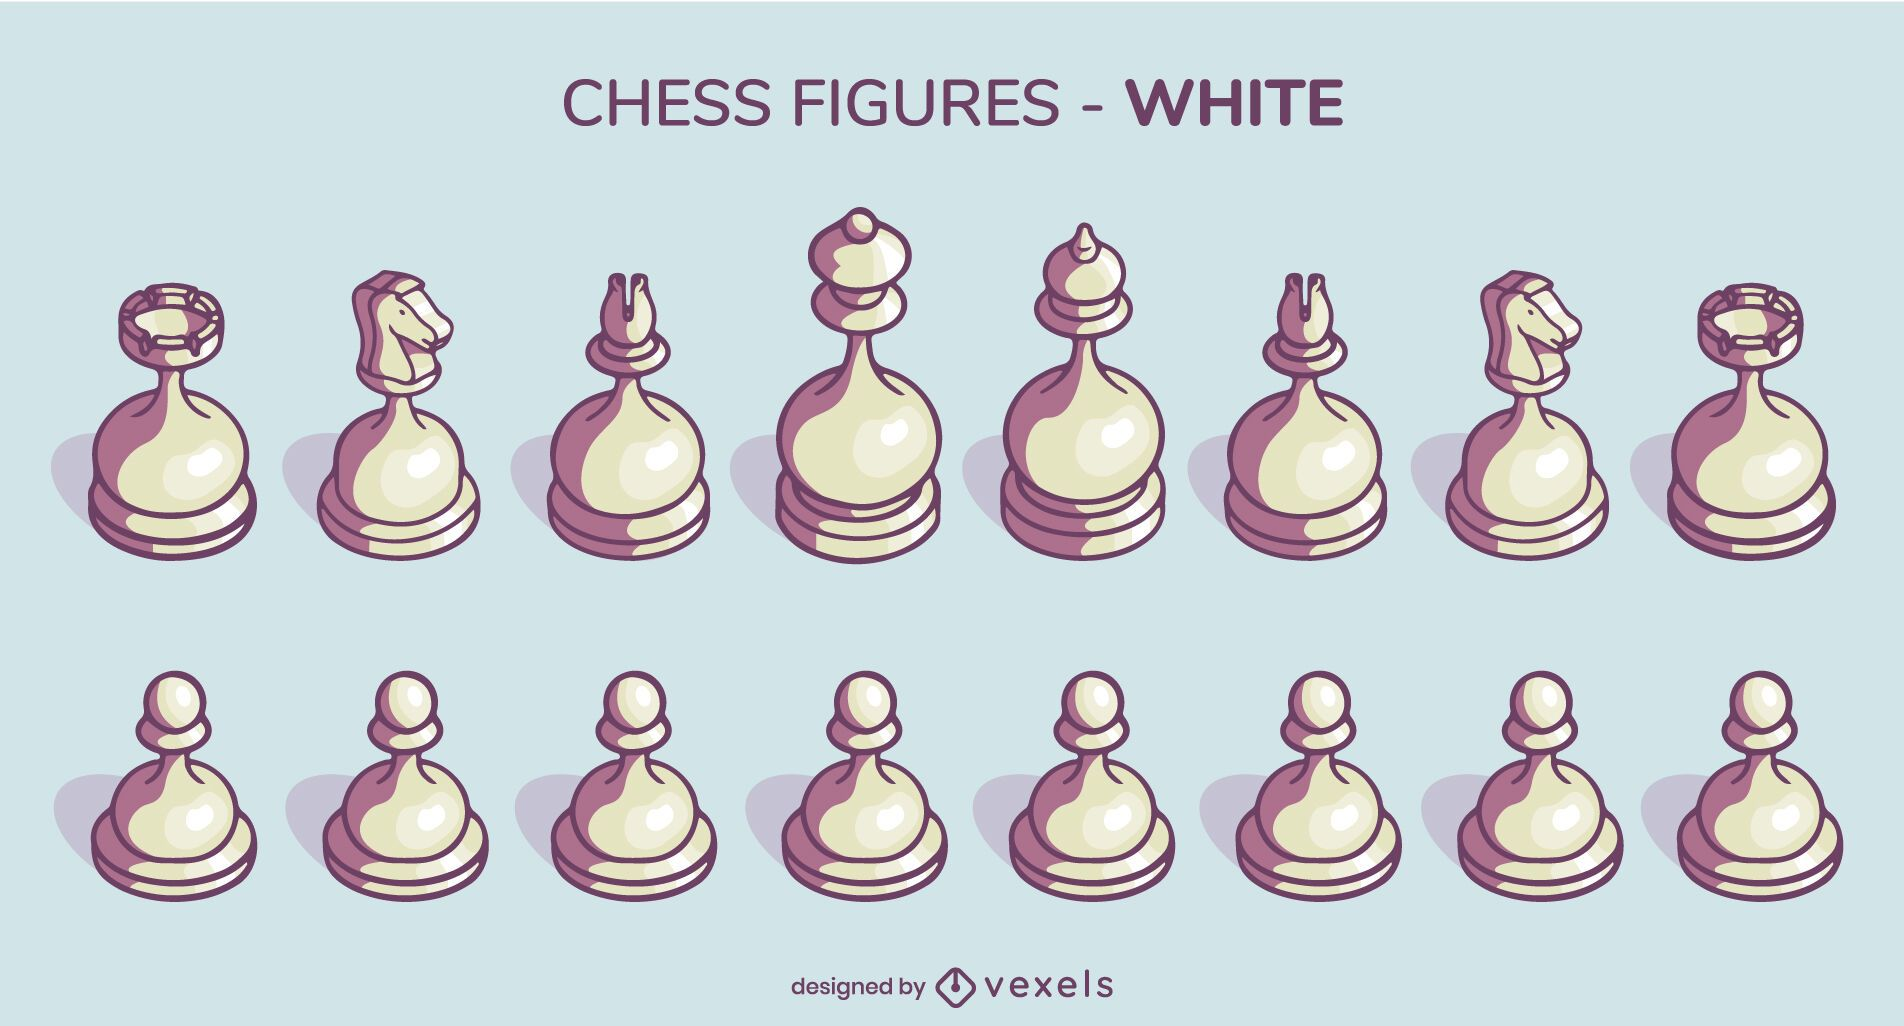 White rounded chess pieces set illustration